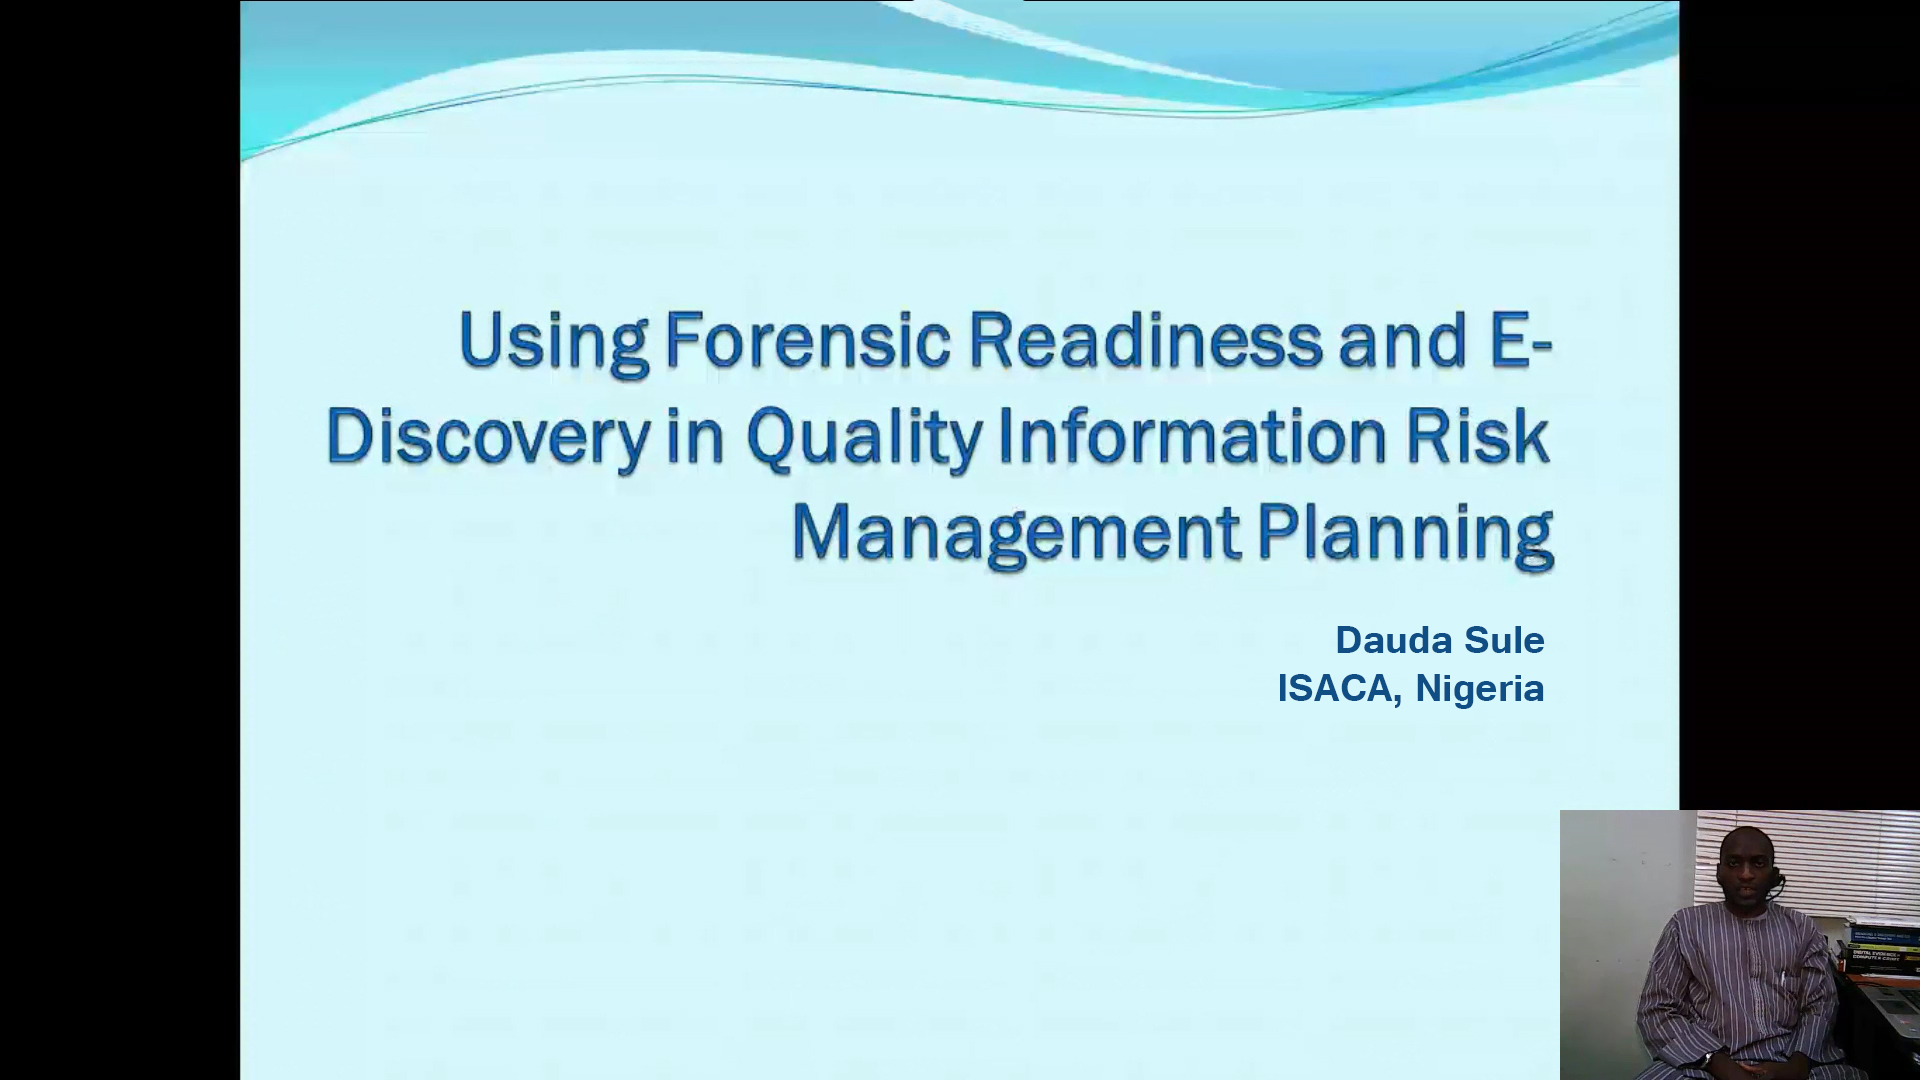 Using Forensic Readiness and E-Discovery in Quality Information Risk Management Planning